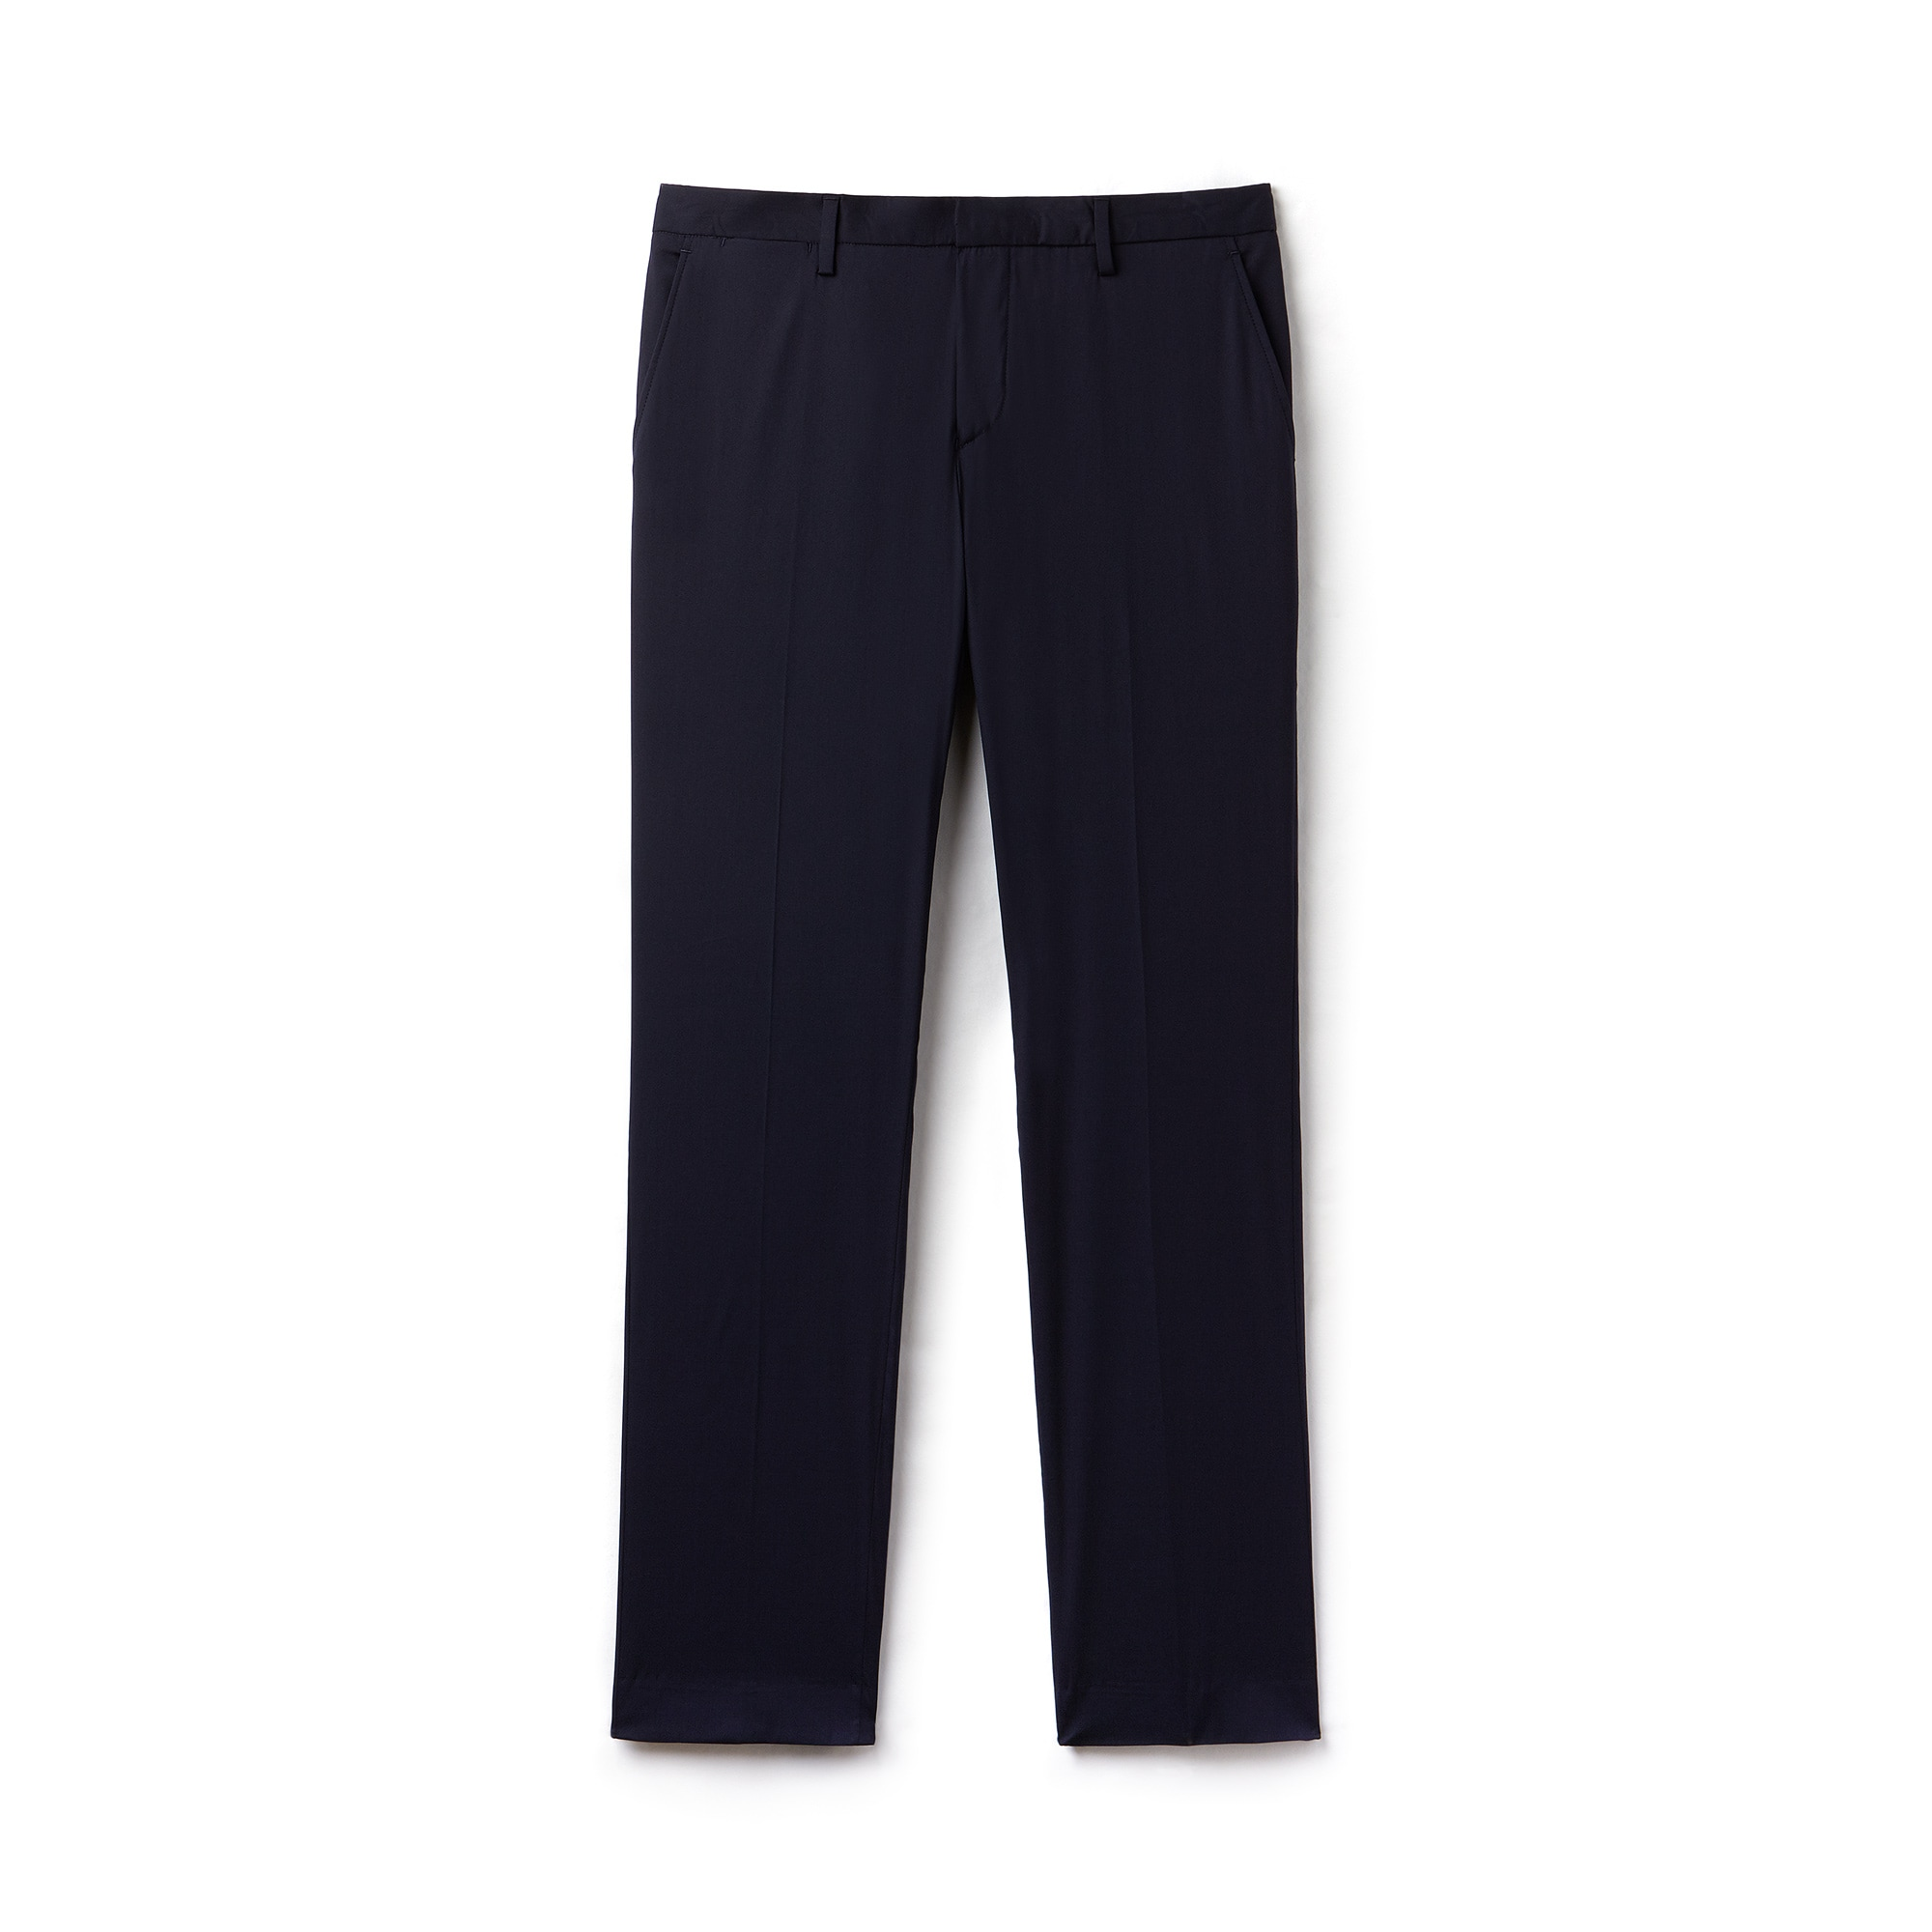 Pantalon chino à pinces regular fit Lacoste MOTION en popeline stretch unie